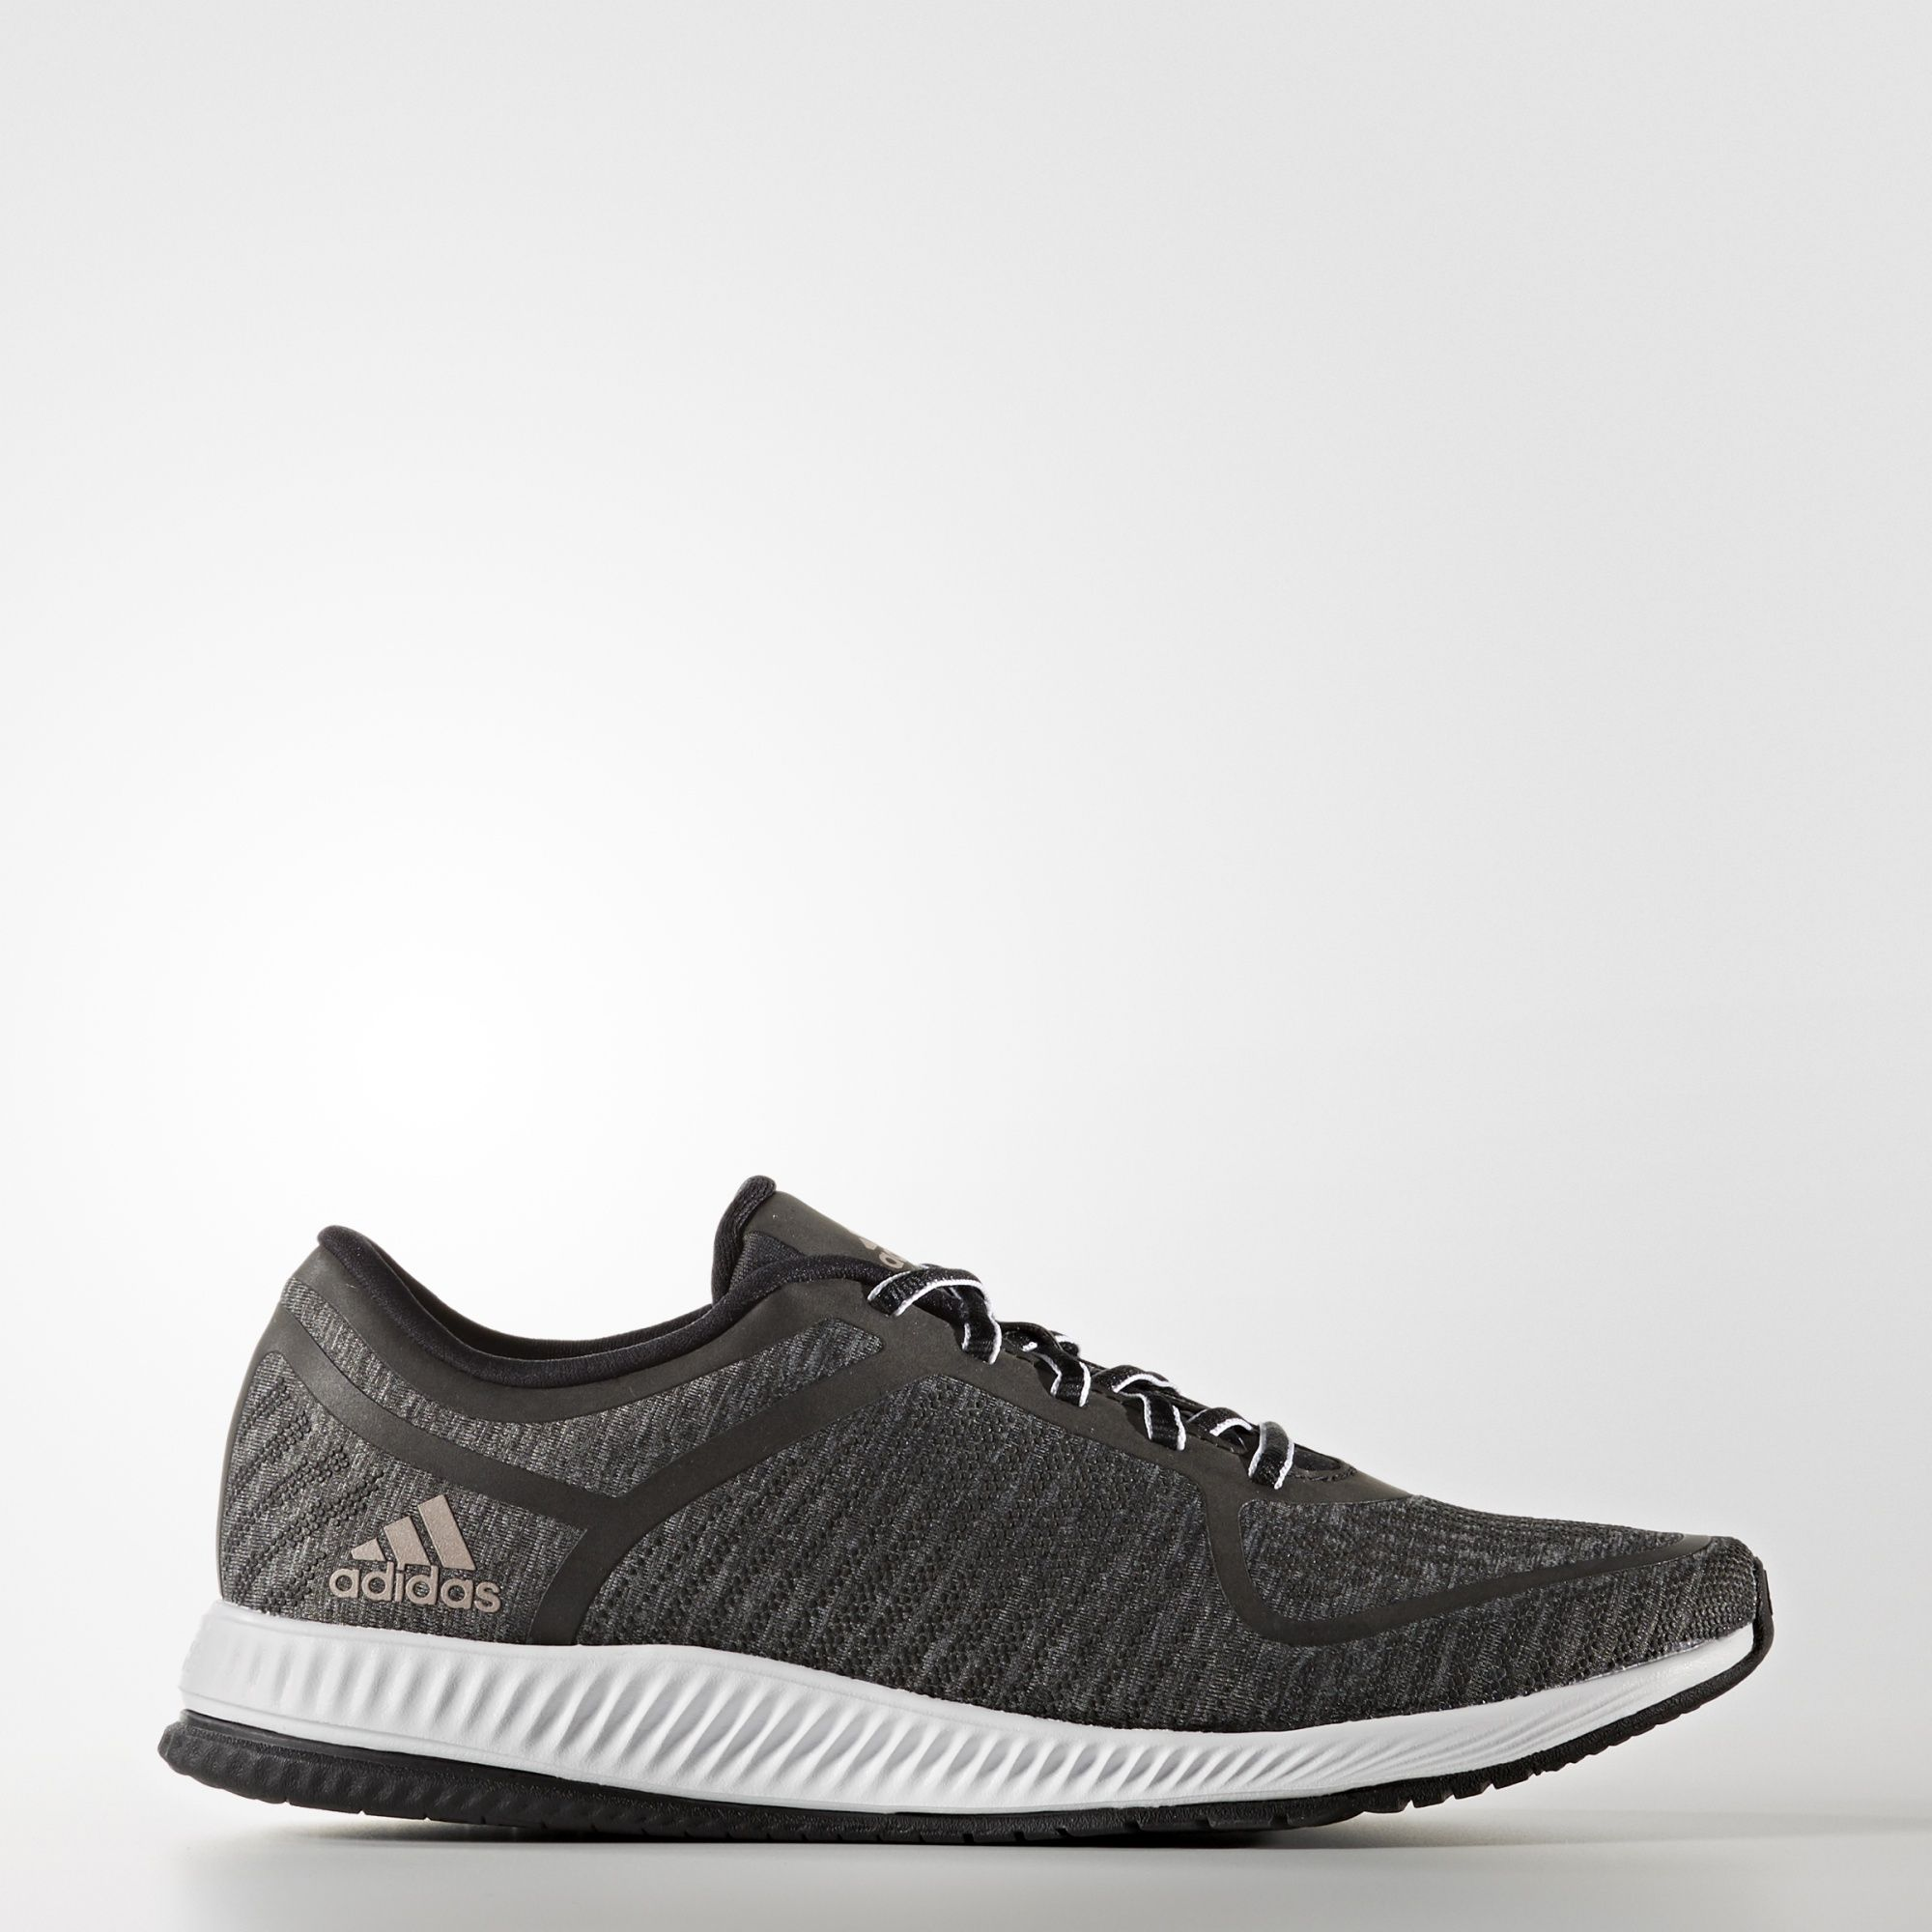 d4805d16b36 A modern look with clean lines and high-energy style. These women s  training shoes